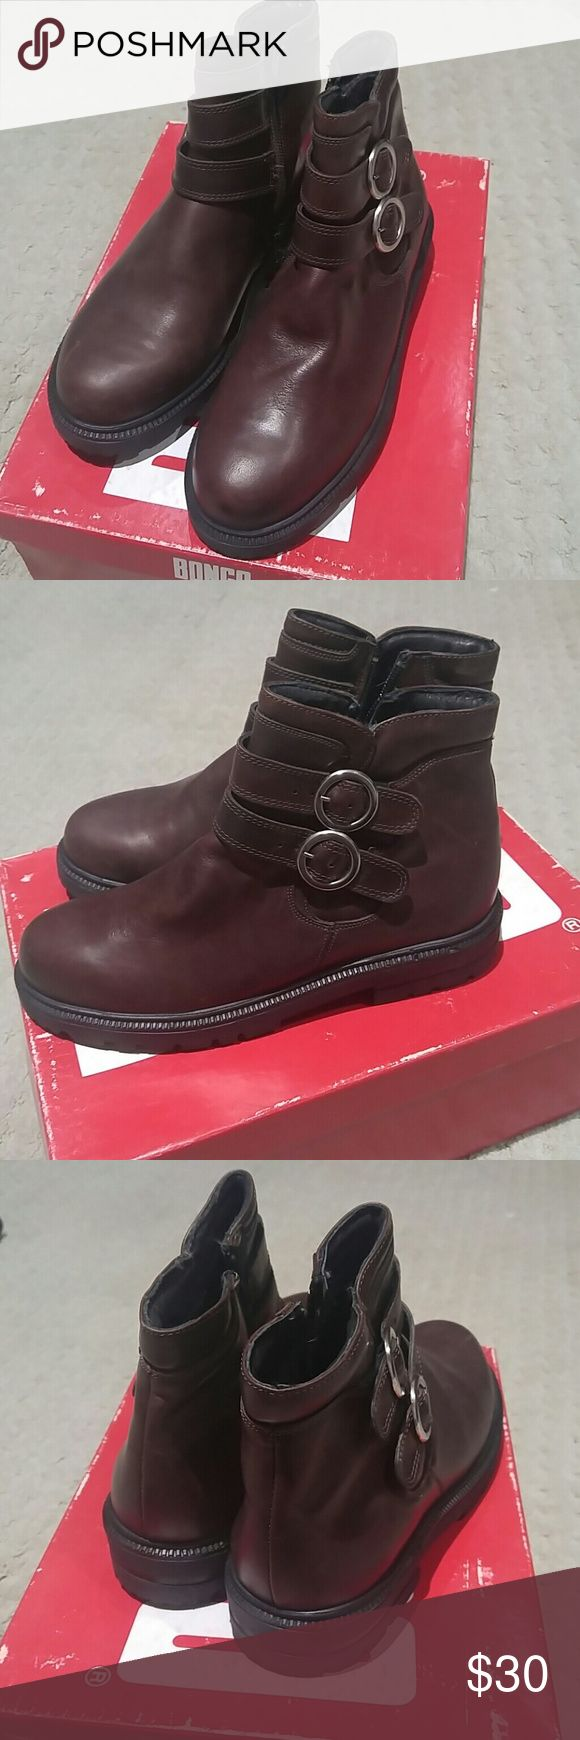 Josef Seibel Boot All Brown leather boot with 2 straps Josef Seibel Shoes Ankle Boots & Booties